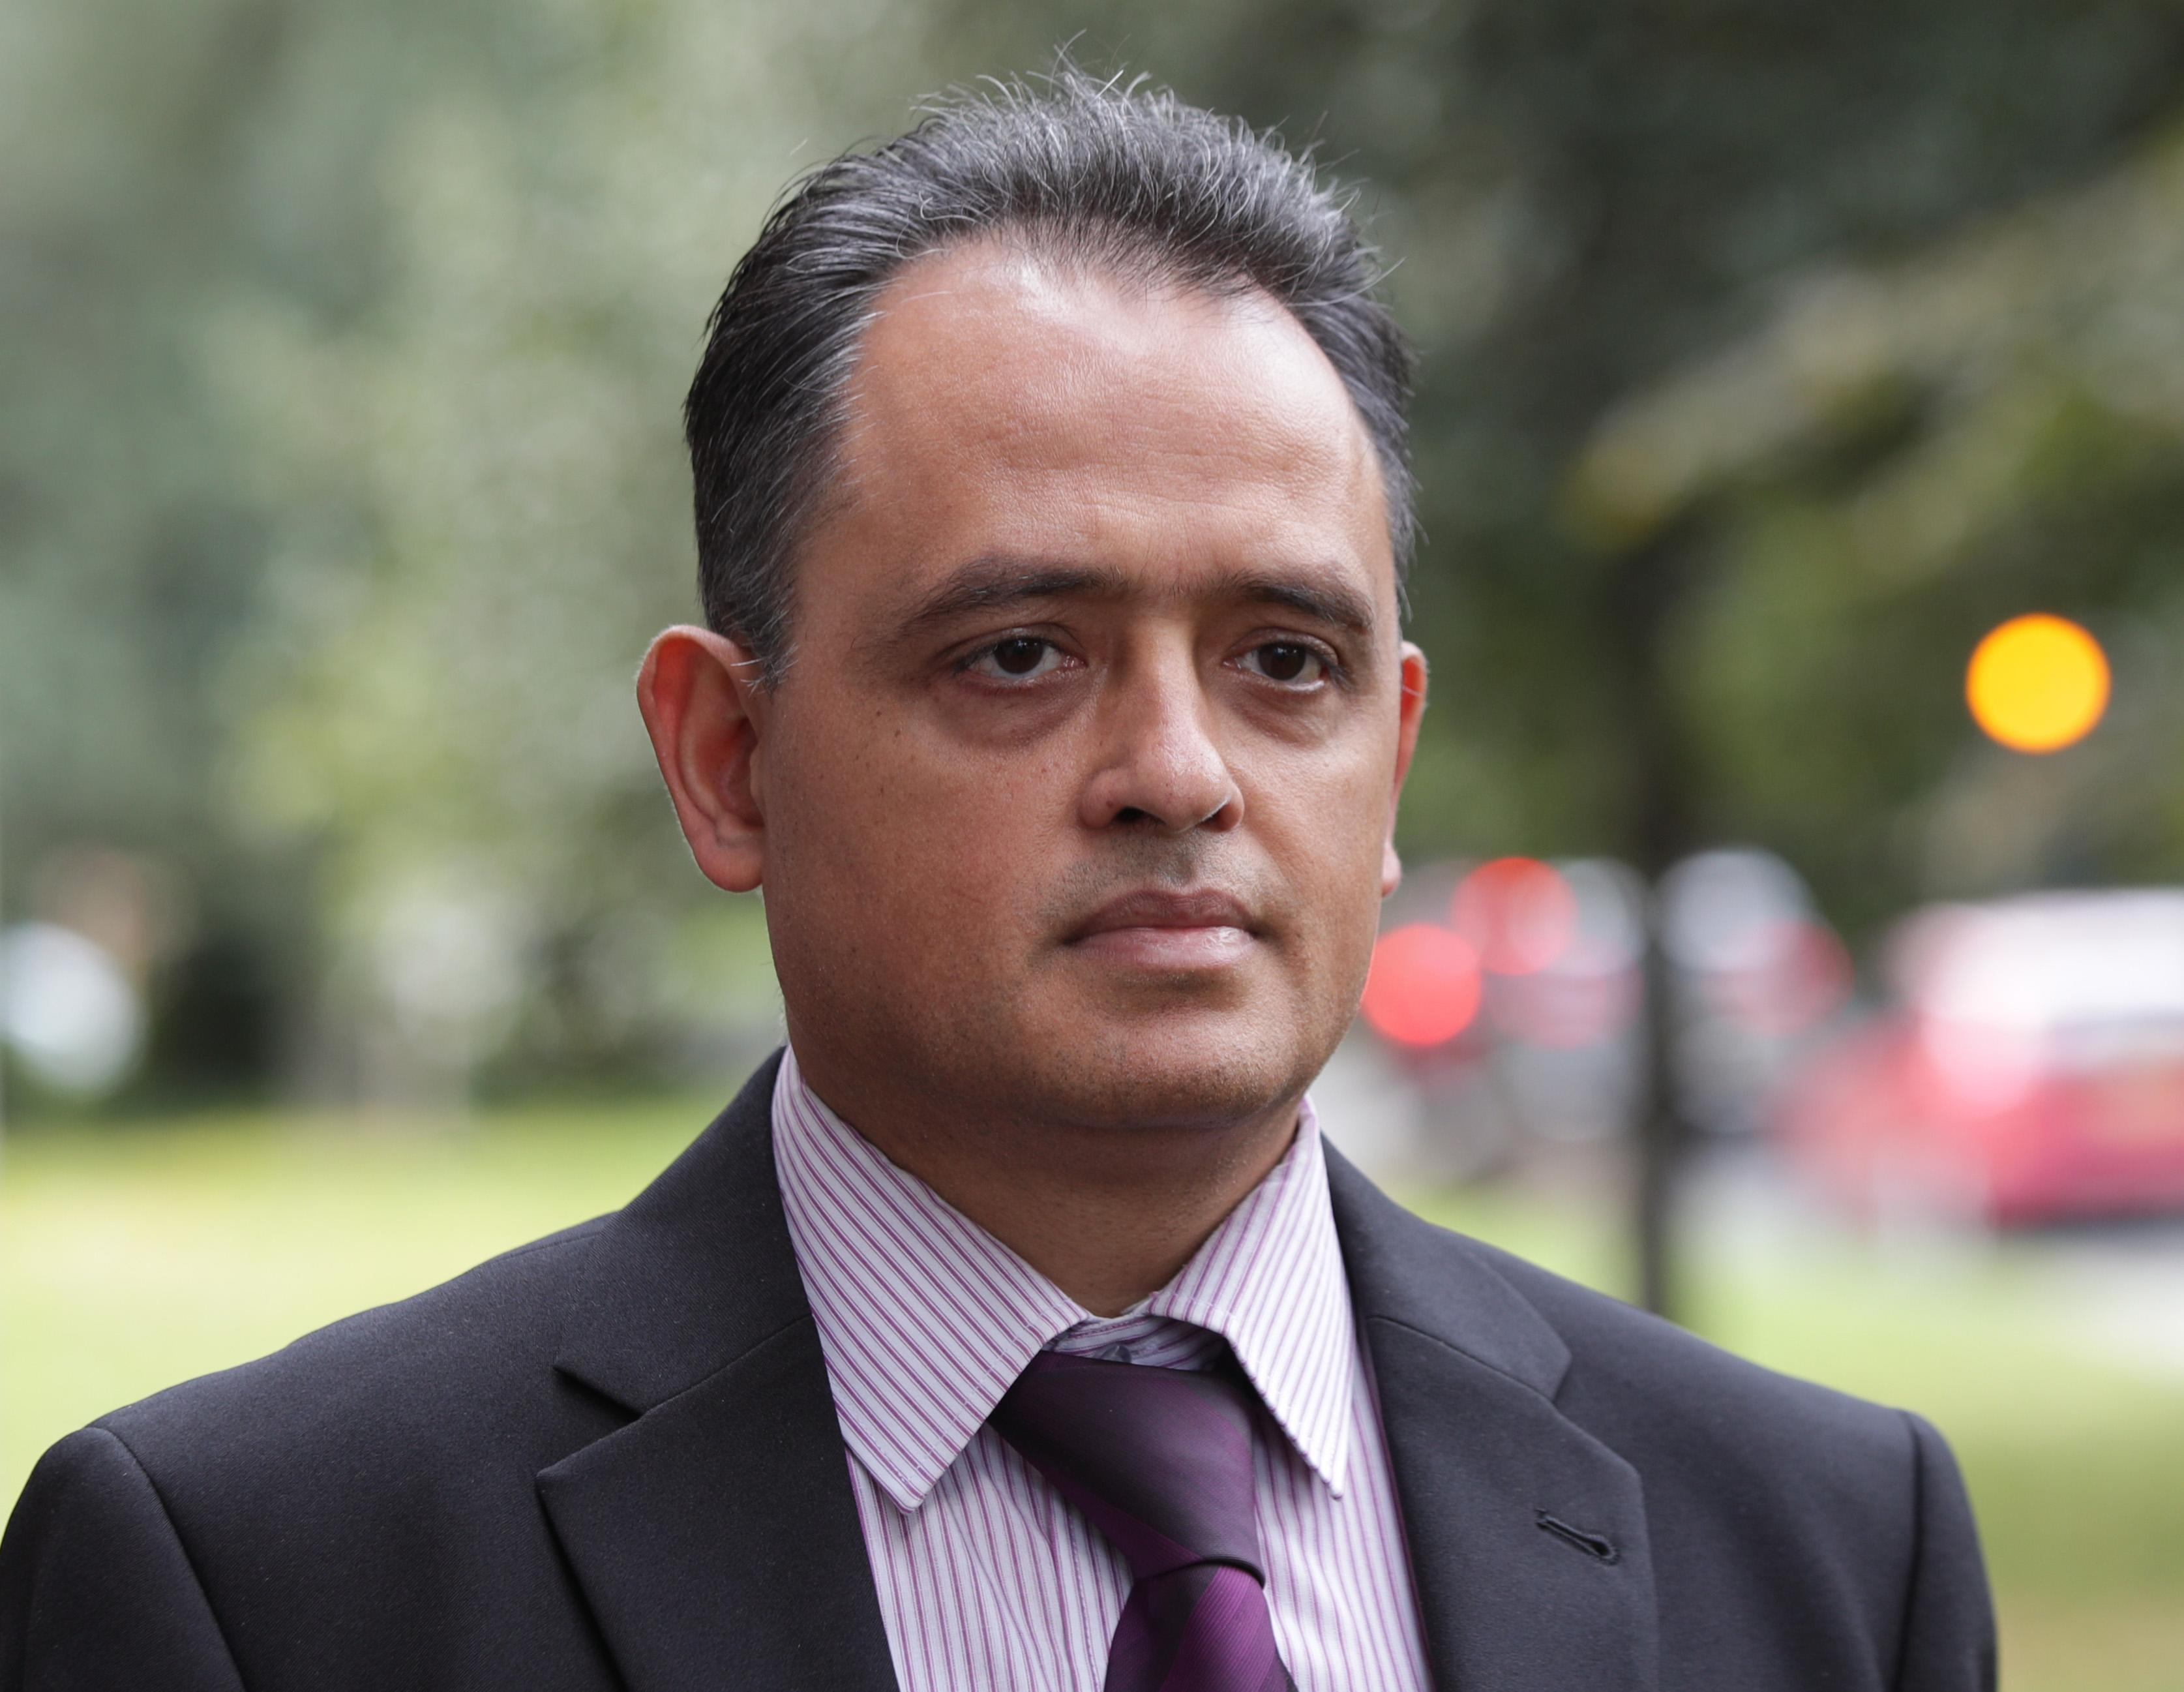 Manish Shah has been sentenced for molesting his patients. (PA Images)